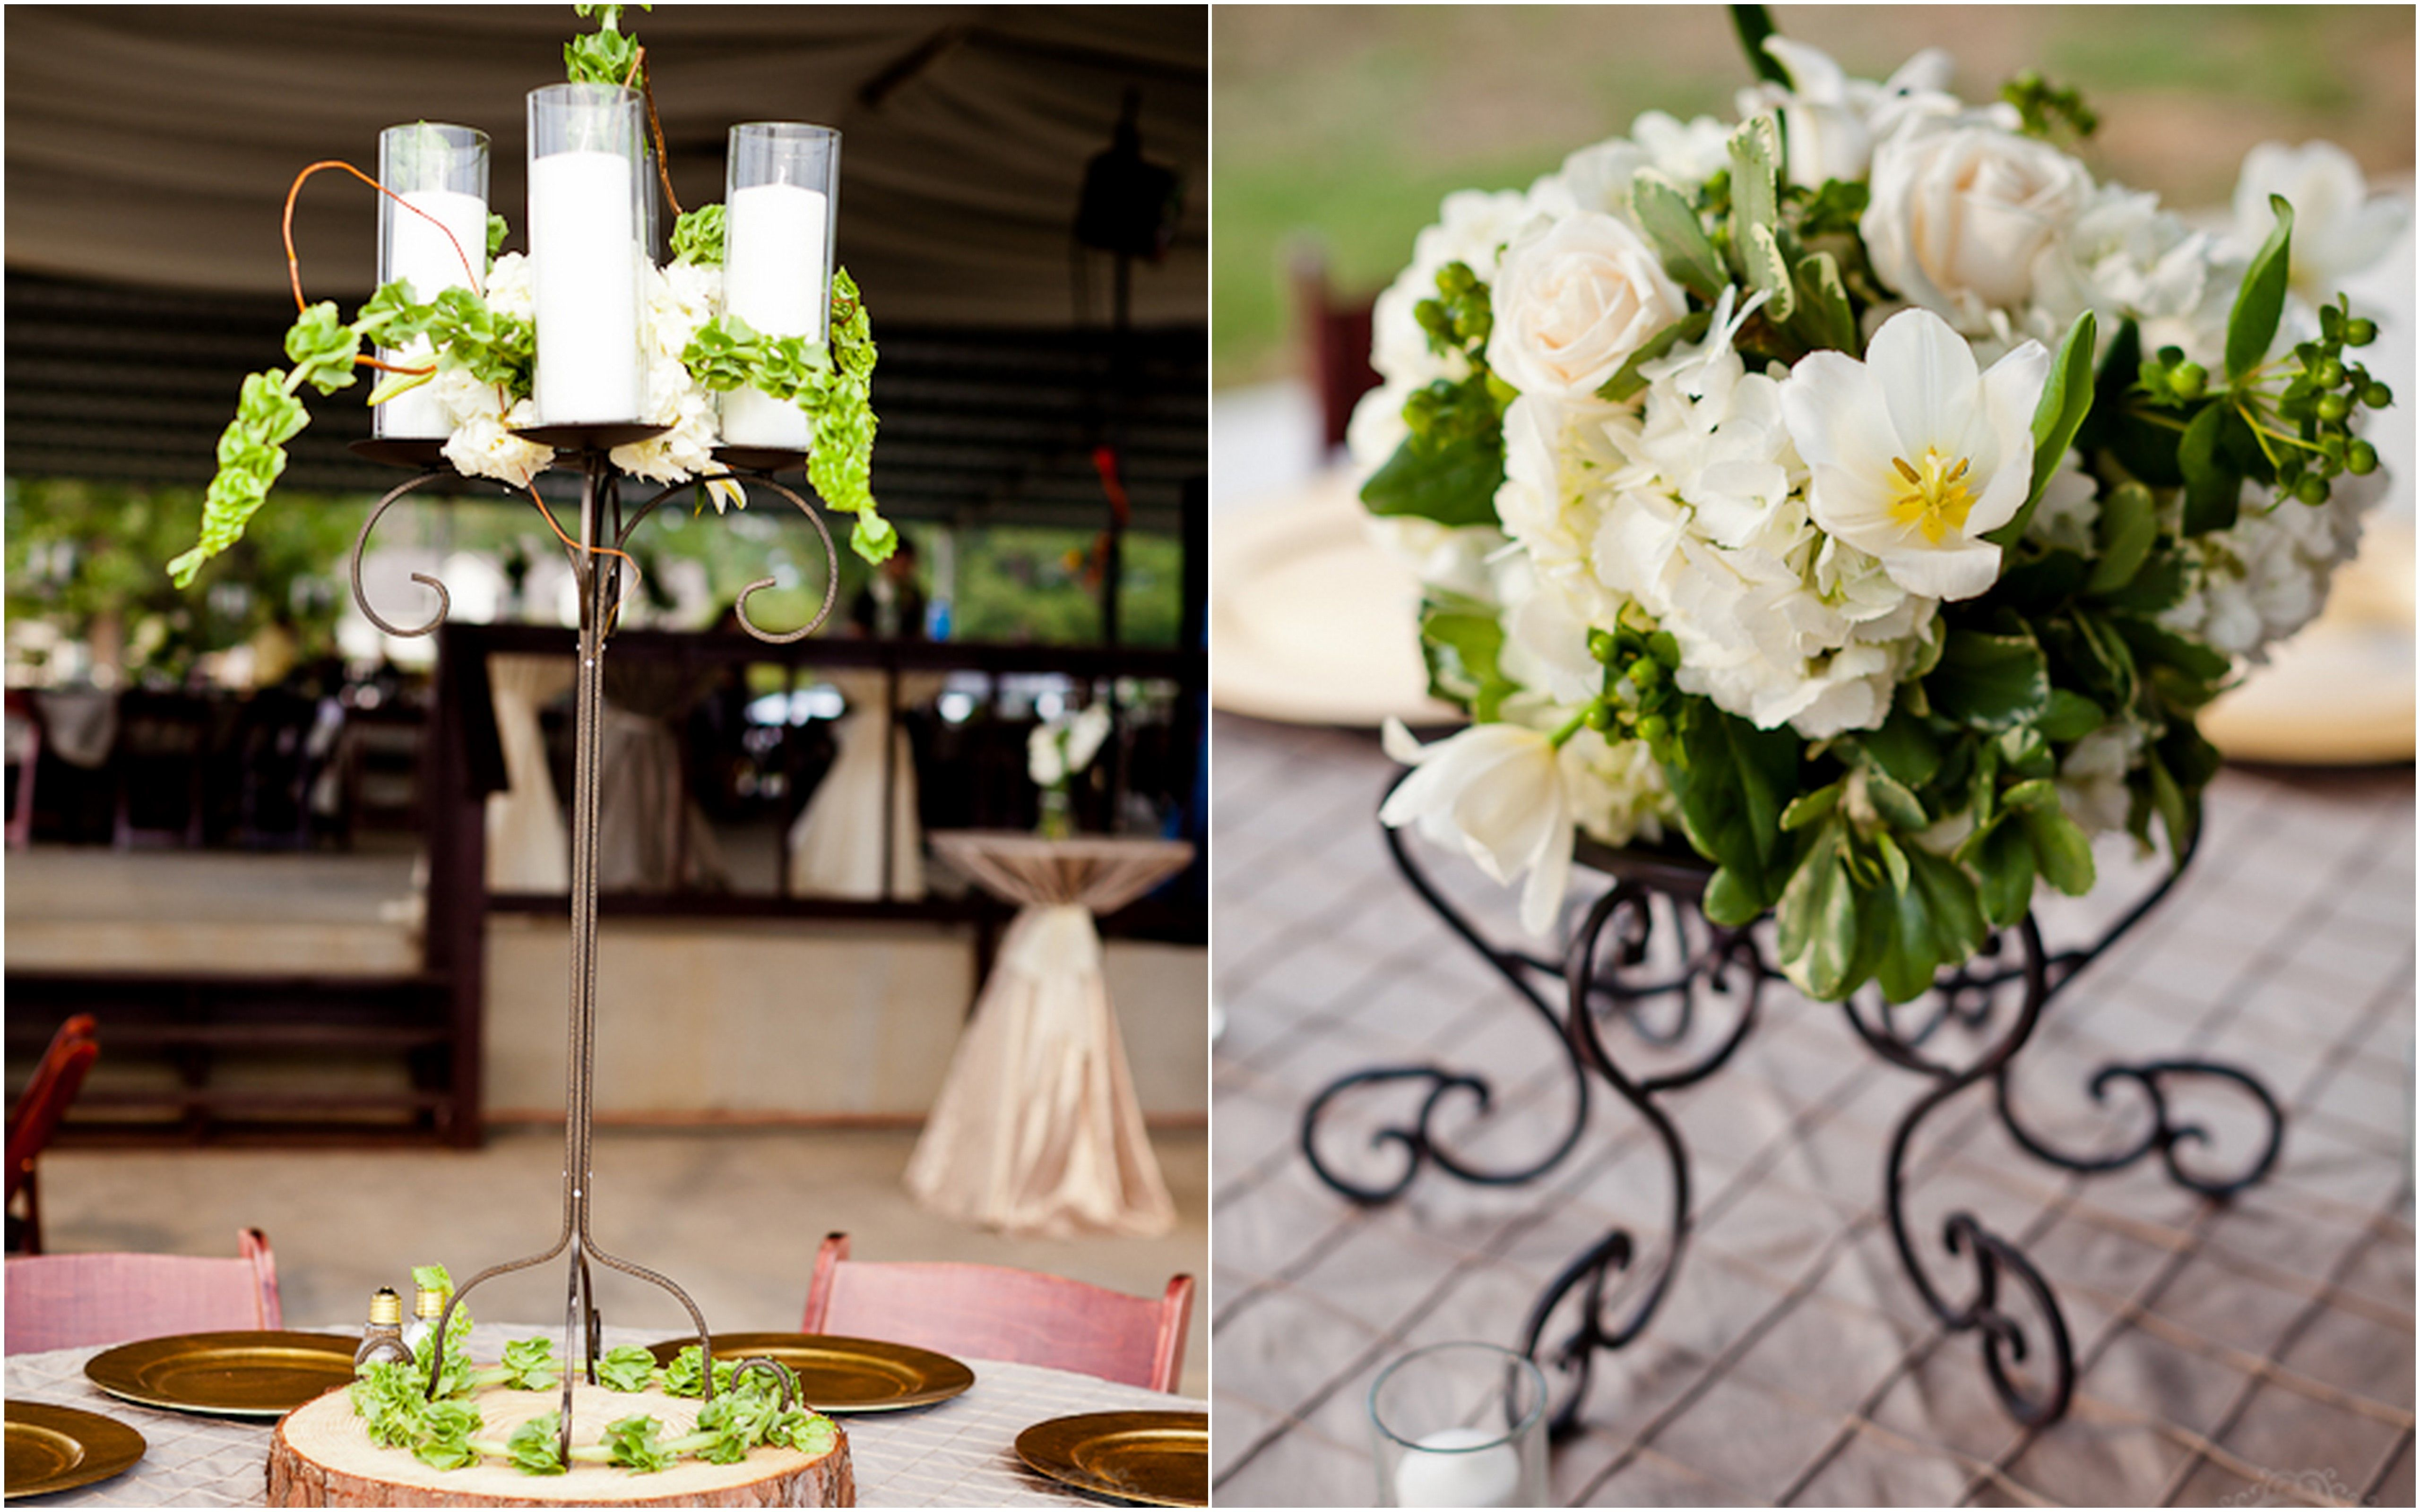 These Are The Centerpieces I Thought You Might Like